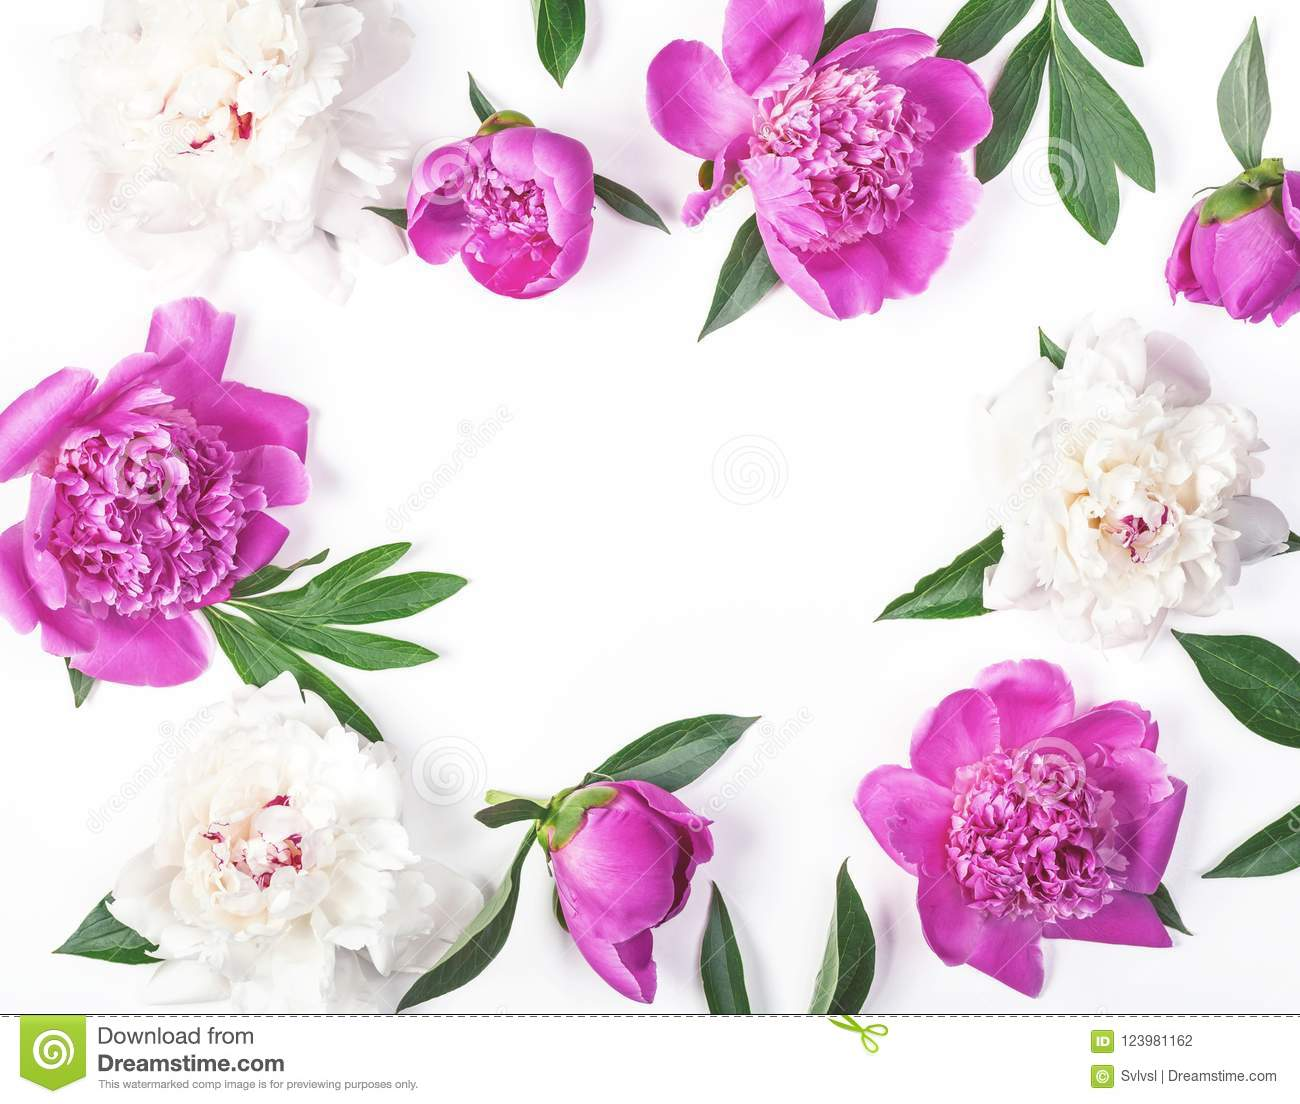 Floral frame made of pink and white peony flowers and leaves isolated on white background. Flat lay.